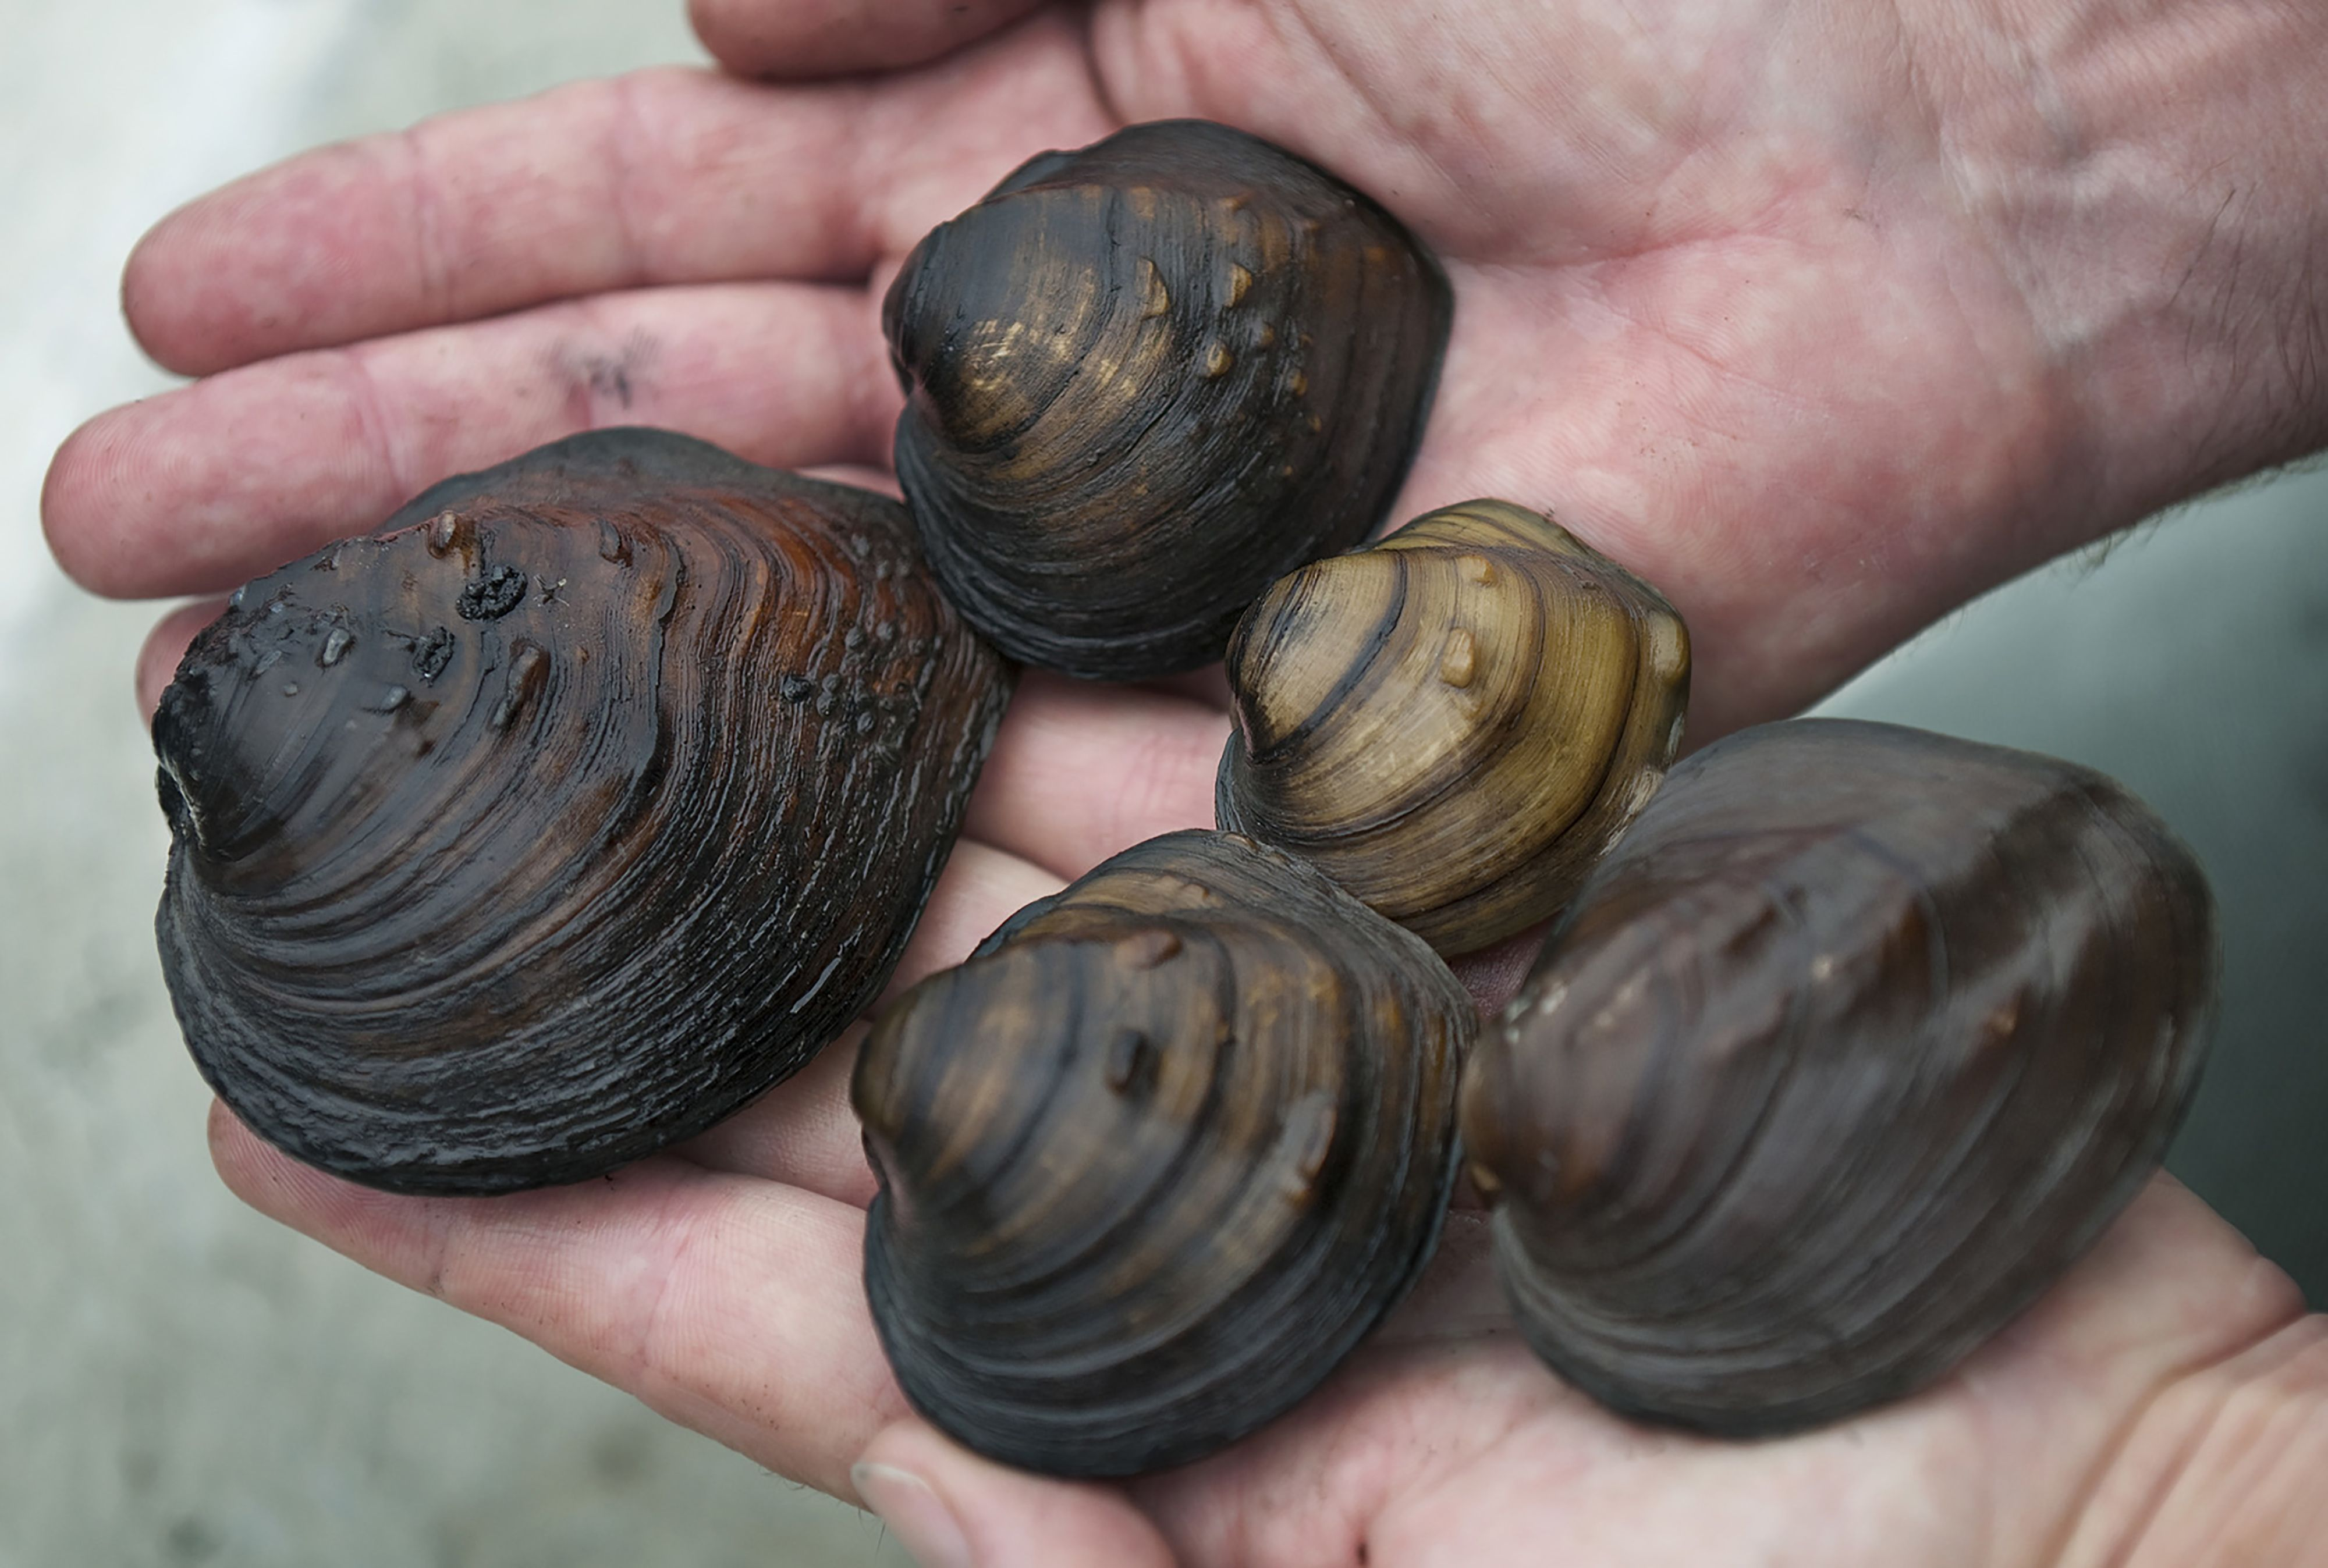 Five freshwater mussels of varying size